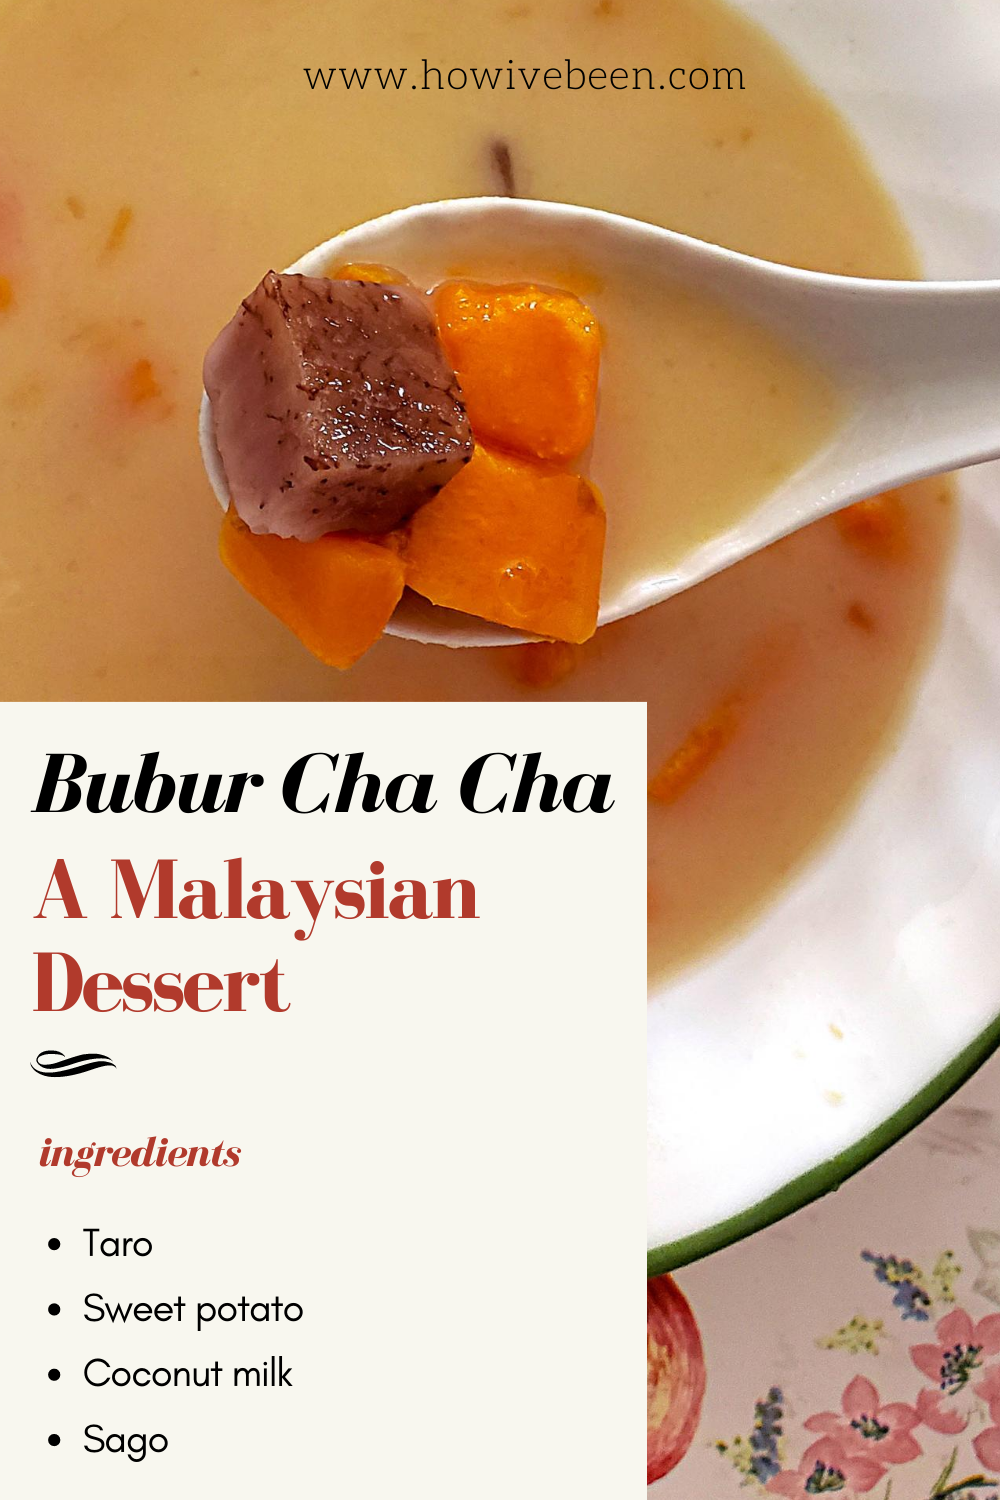 how to make bubur cha cha, a malaysian dessert